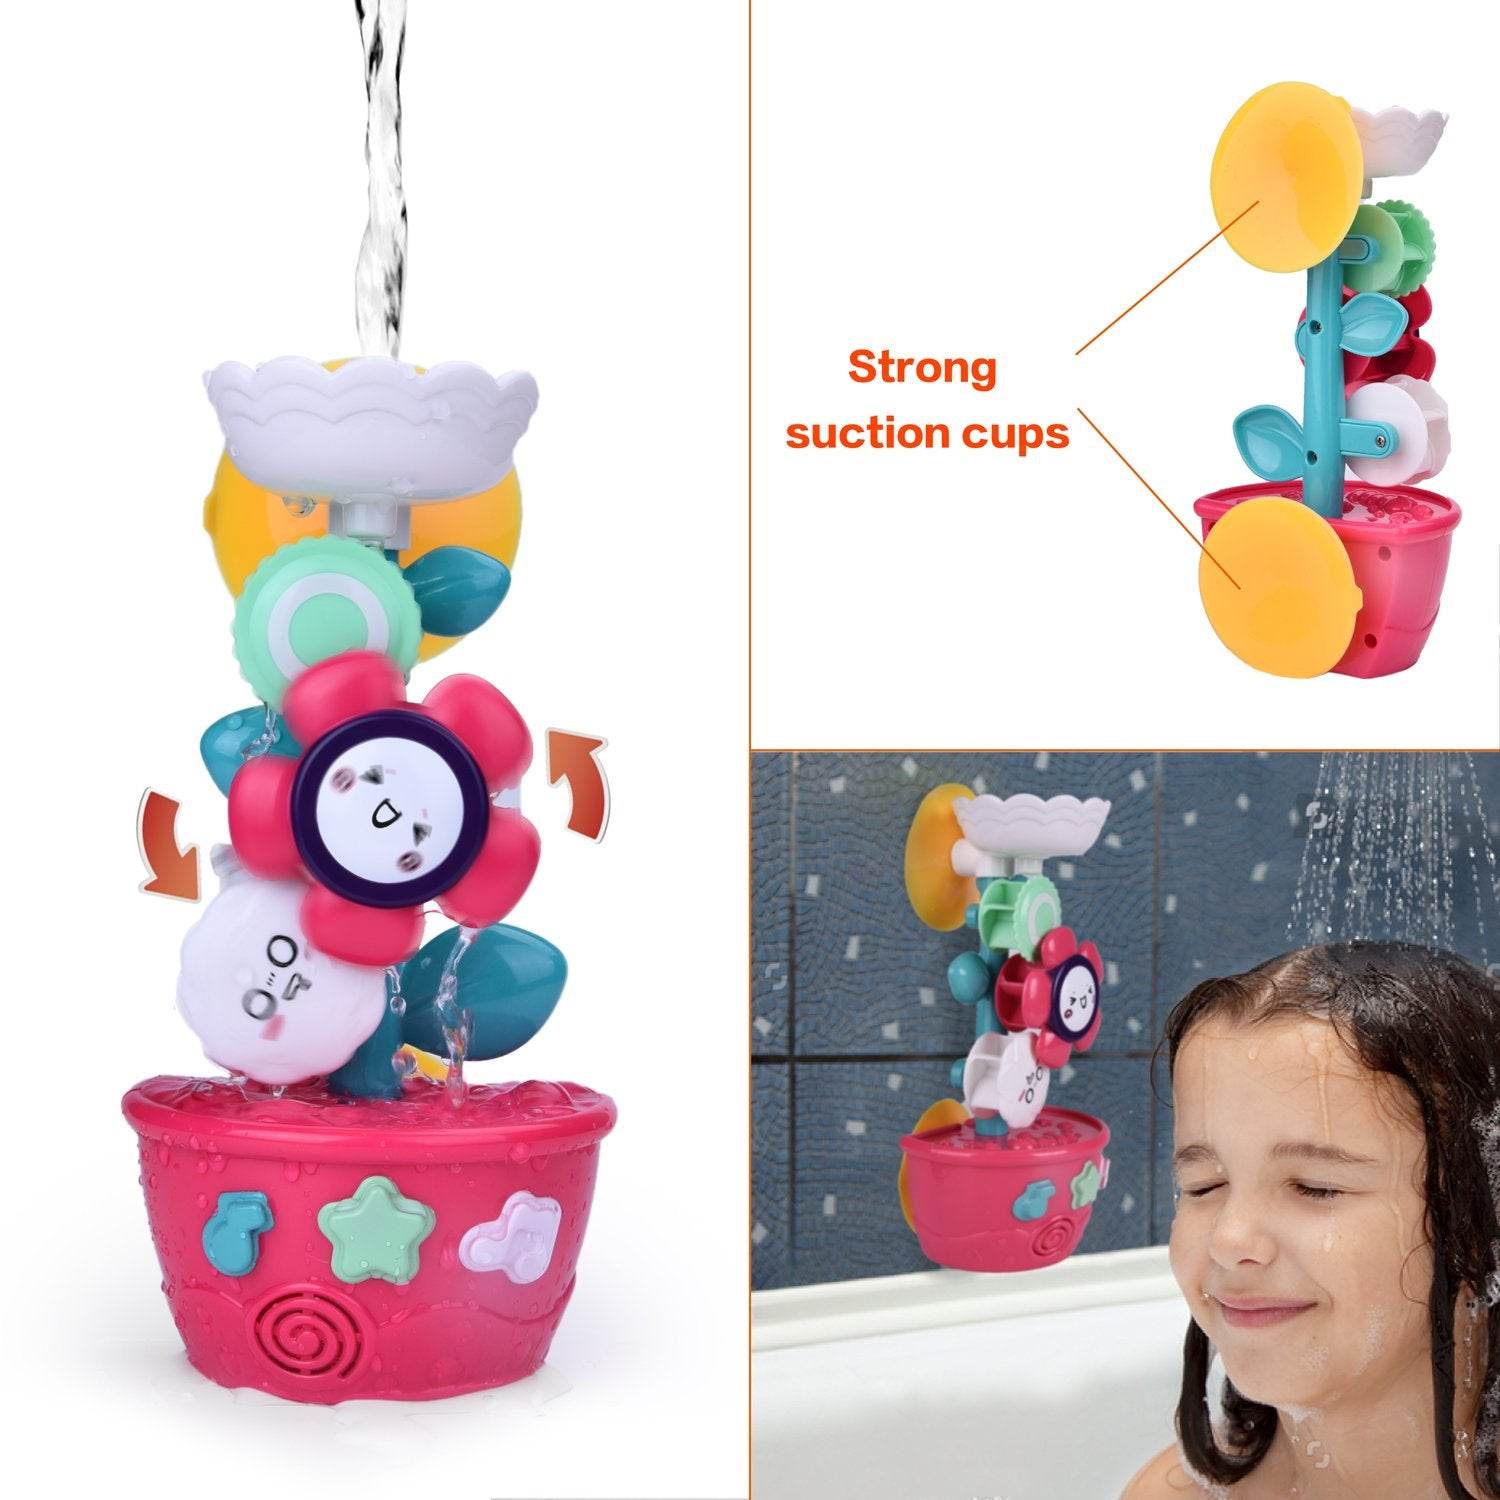 9 PCs Bath Toys Toddlers, Flower Waterfall Water Station Garden Squirter Toys, Stacking Cups Watering Can, Bath Toy Organizer Included Xmas Gift for Kids